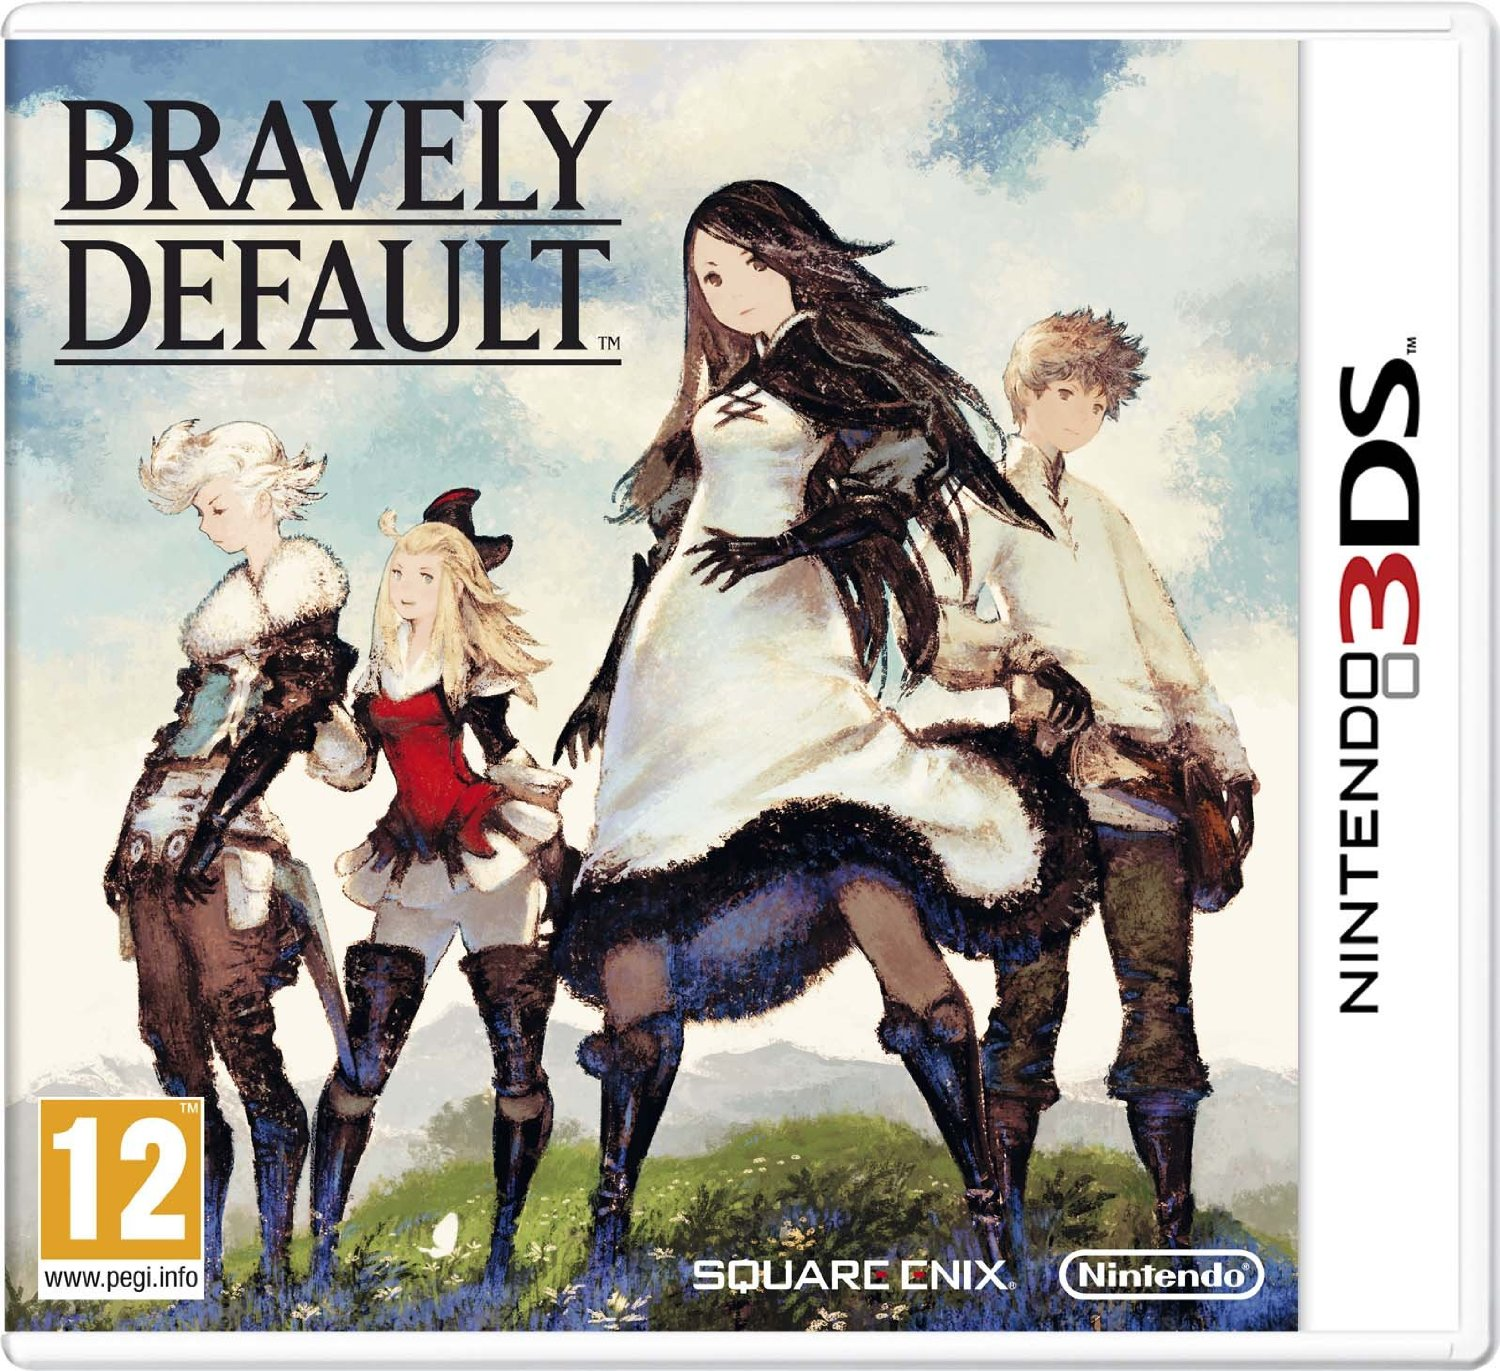 Bravely Default PAL Cover Análisis: Bravely Default